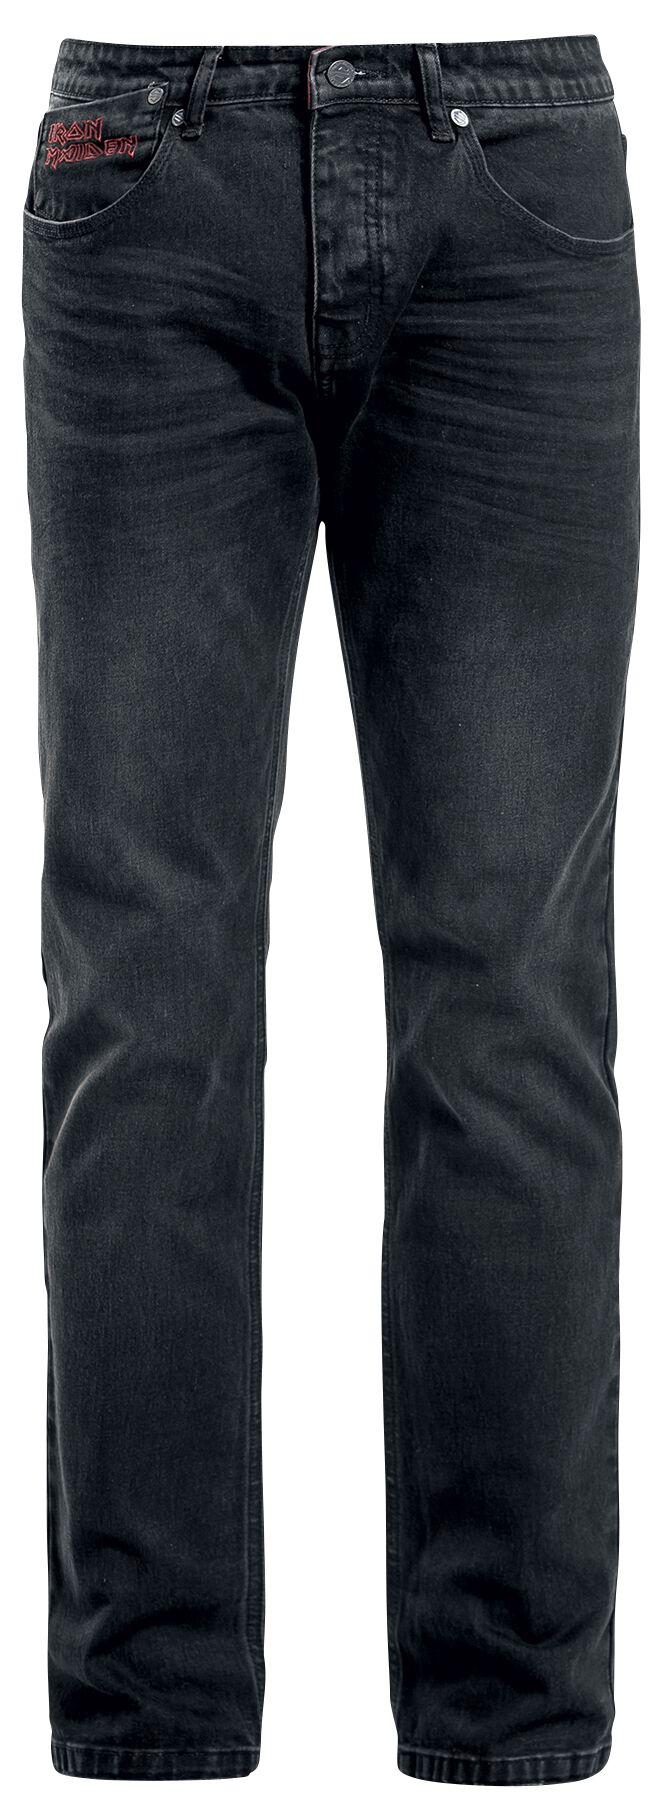 Image of   Iron Maiden EMP Signature Collection Jeans sort